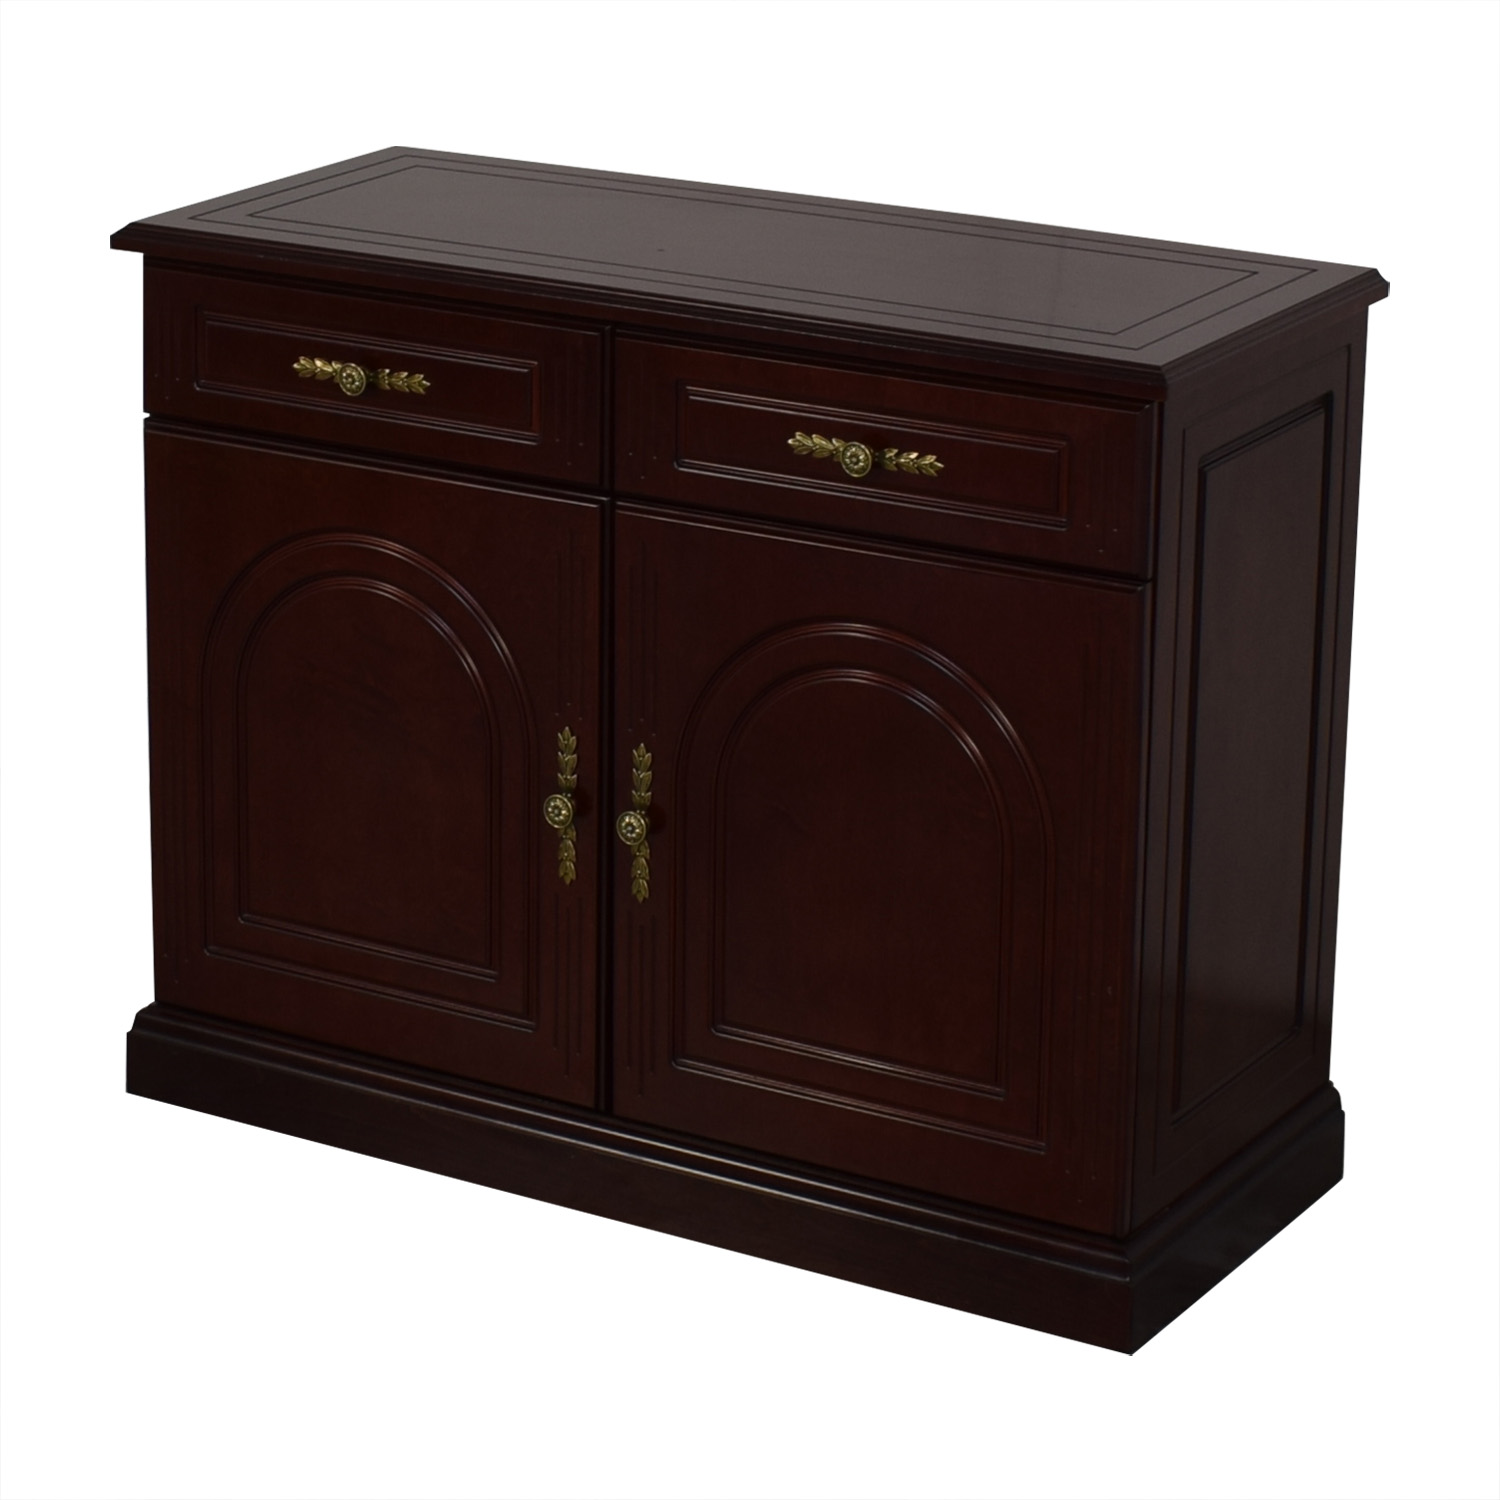 Dining Room Buffet brown